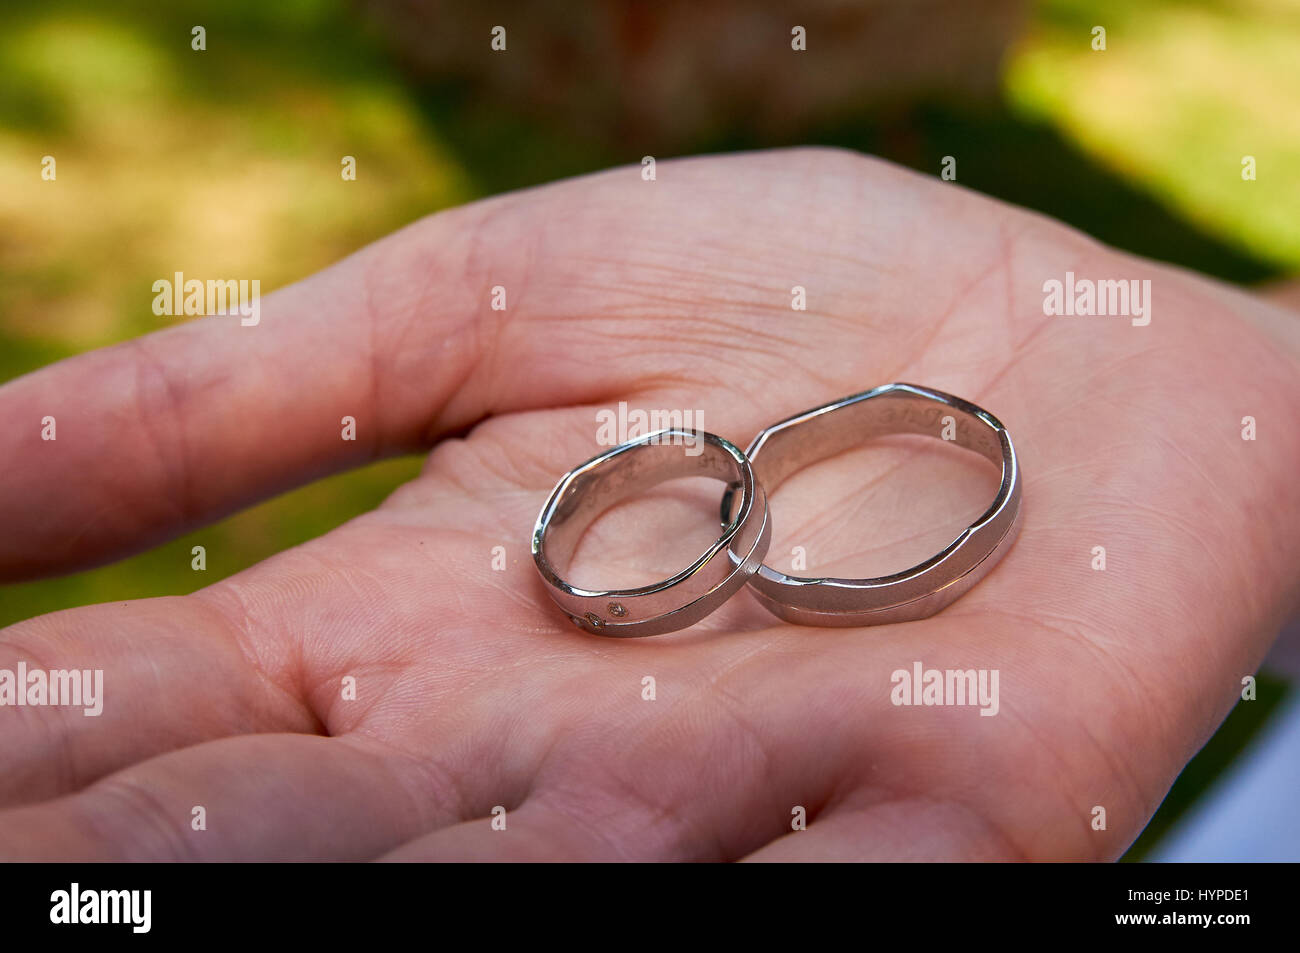 Wedding Rings For Ceremony Stock Photos & Wedding Rings For Ceremony ...